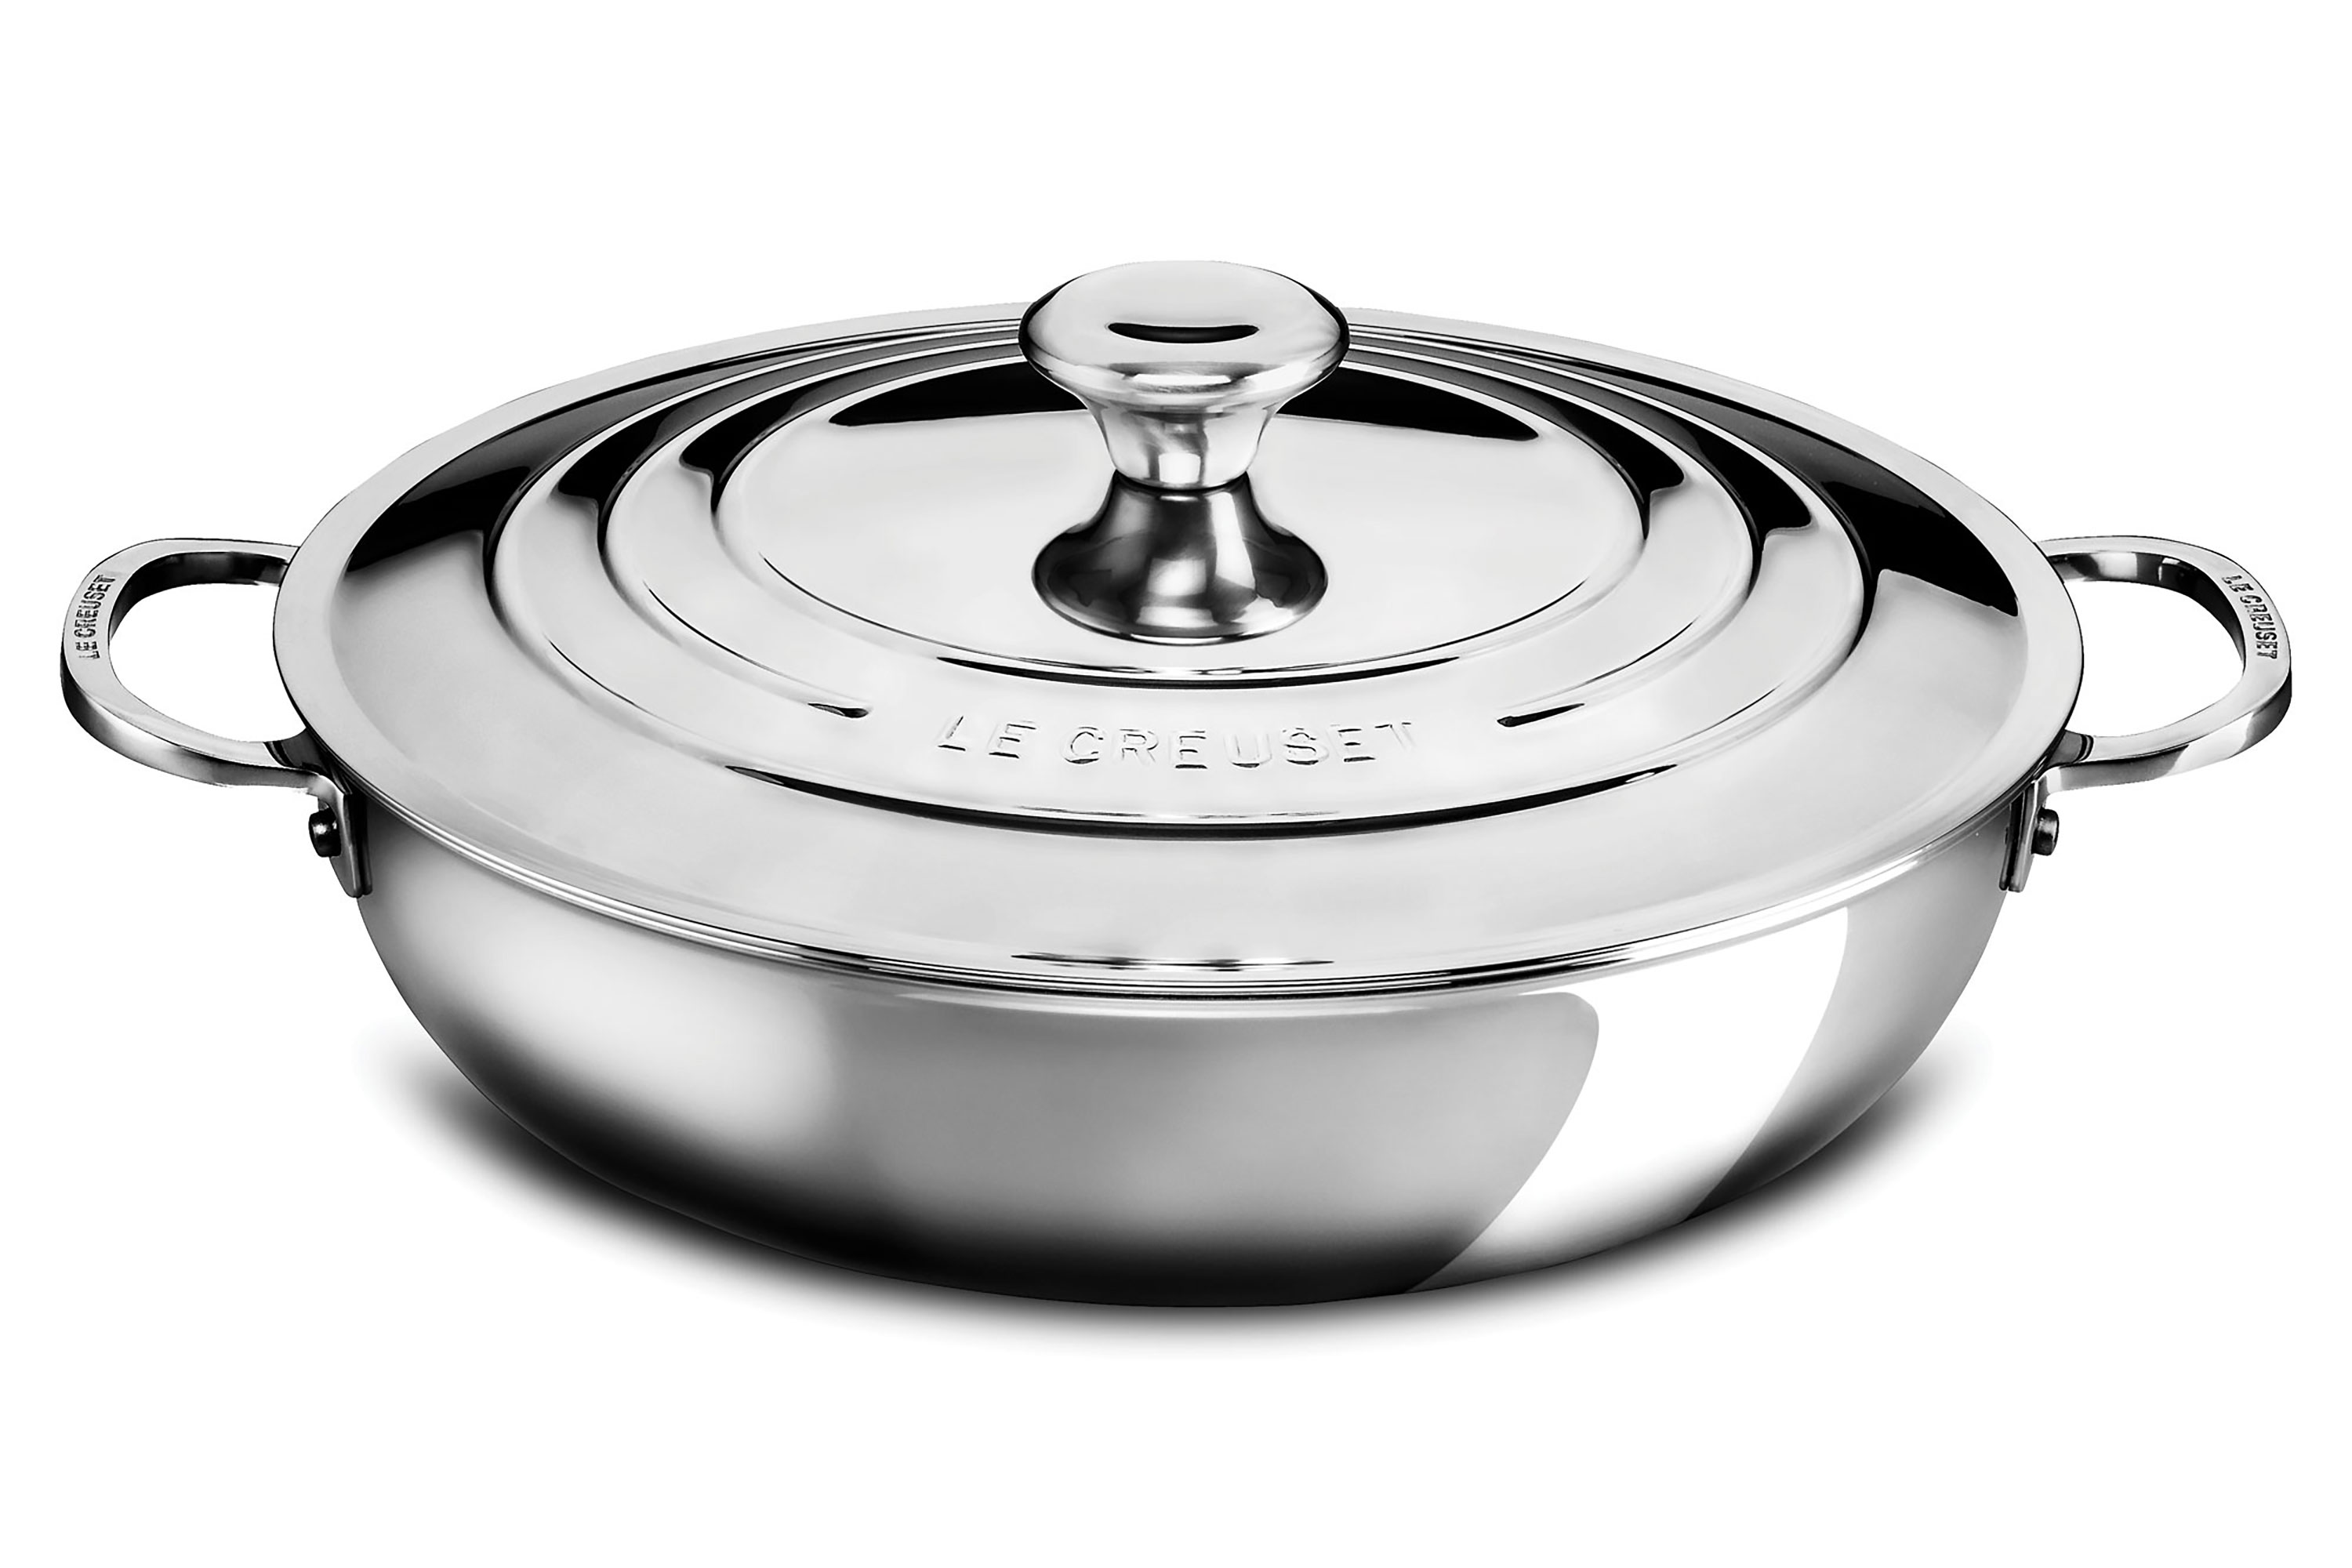 Le Creuset Stainless Steel Braiser 5 Quart Cutlery And More